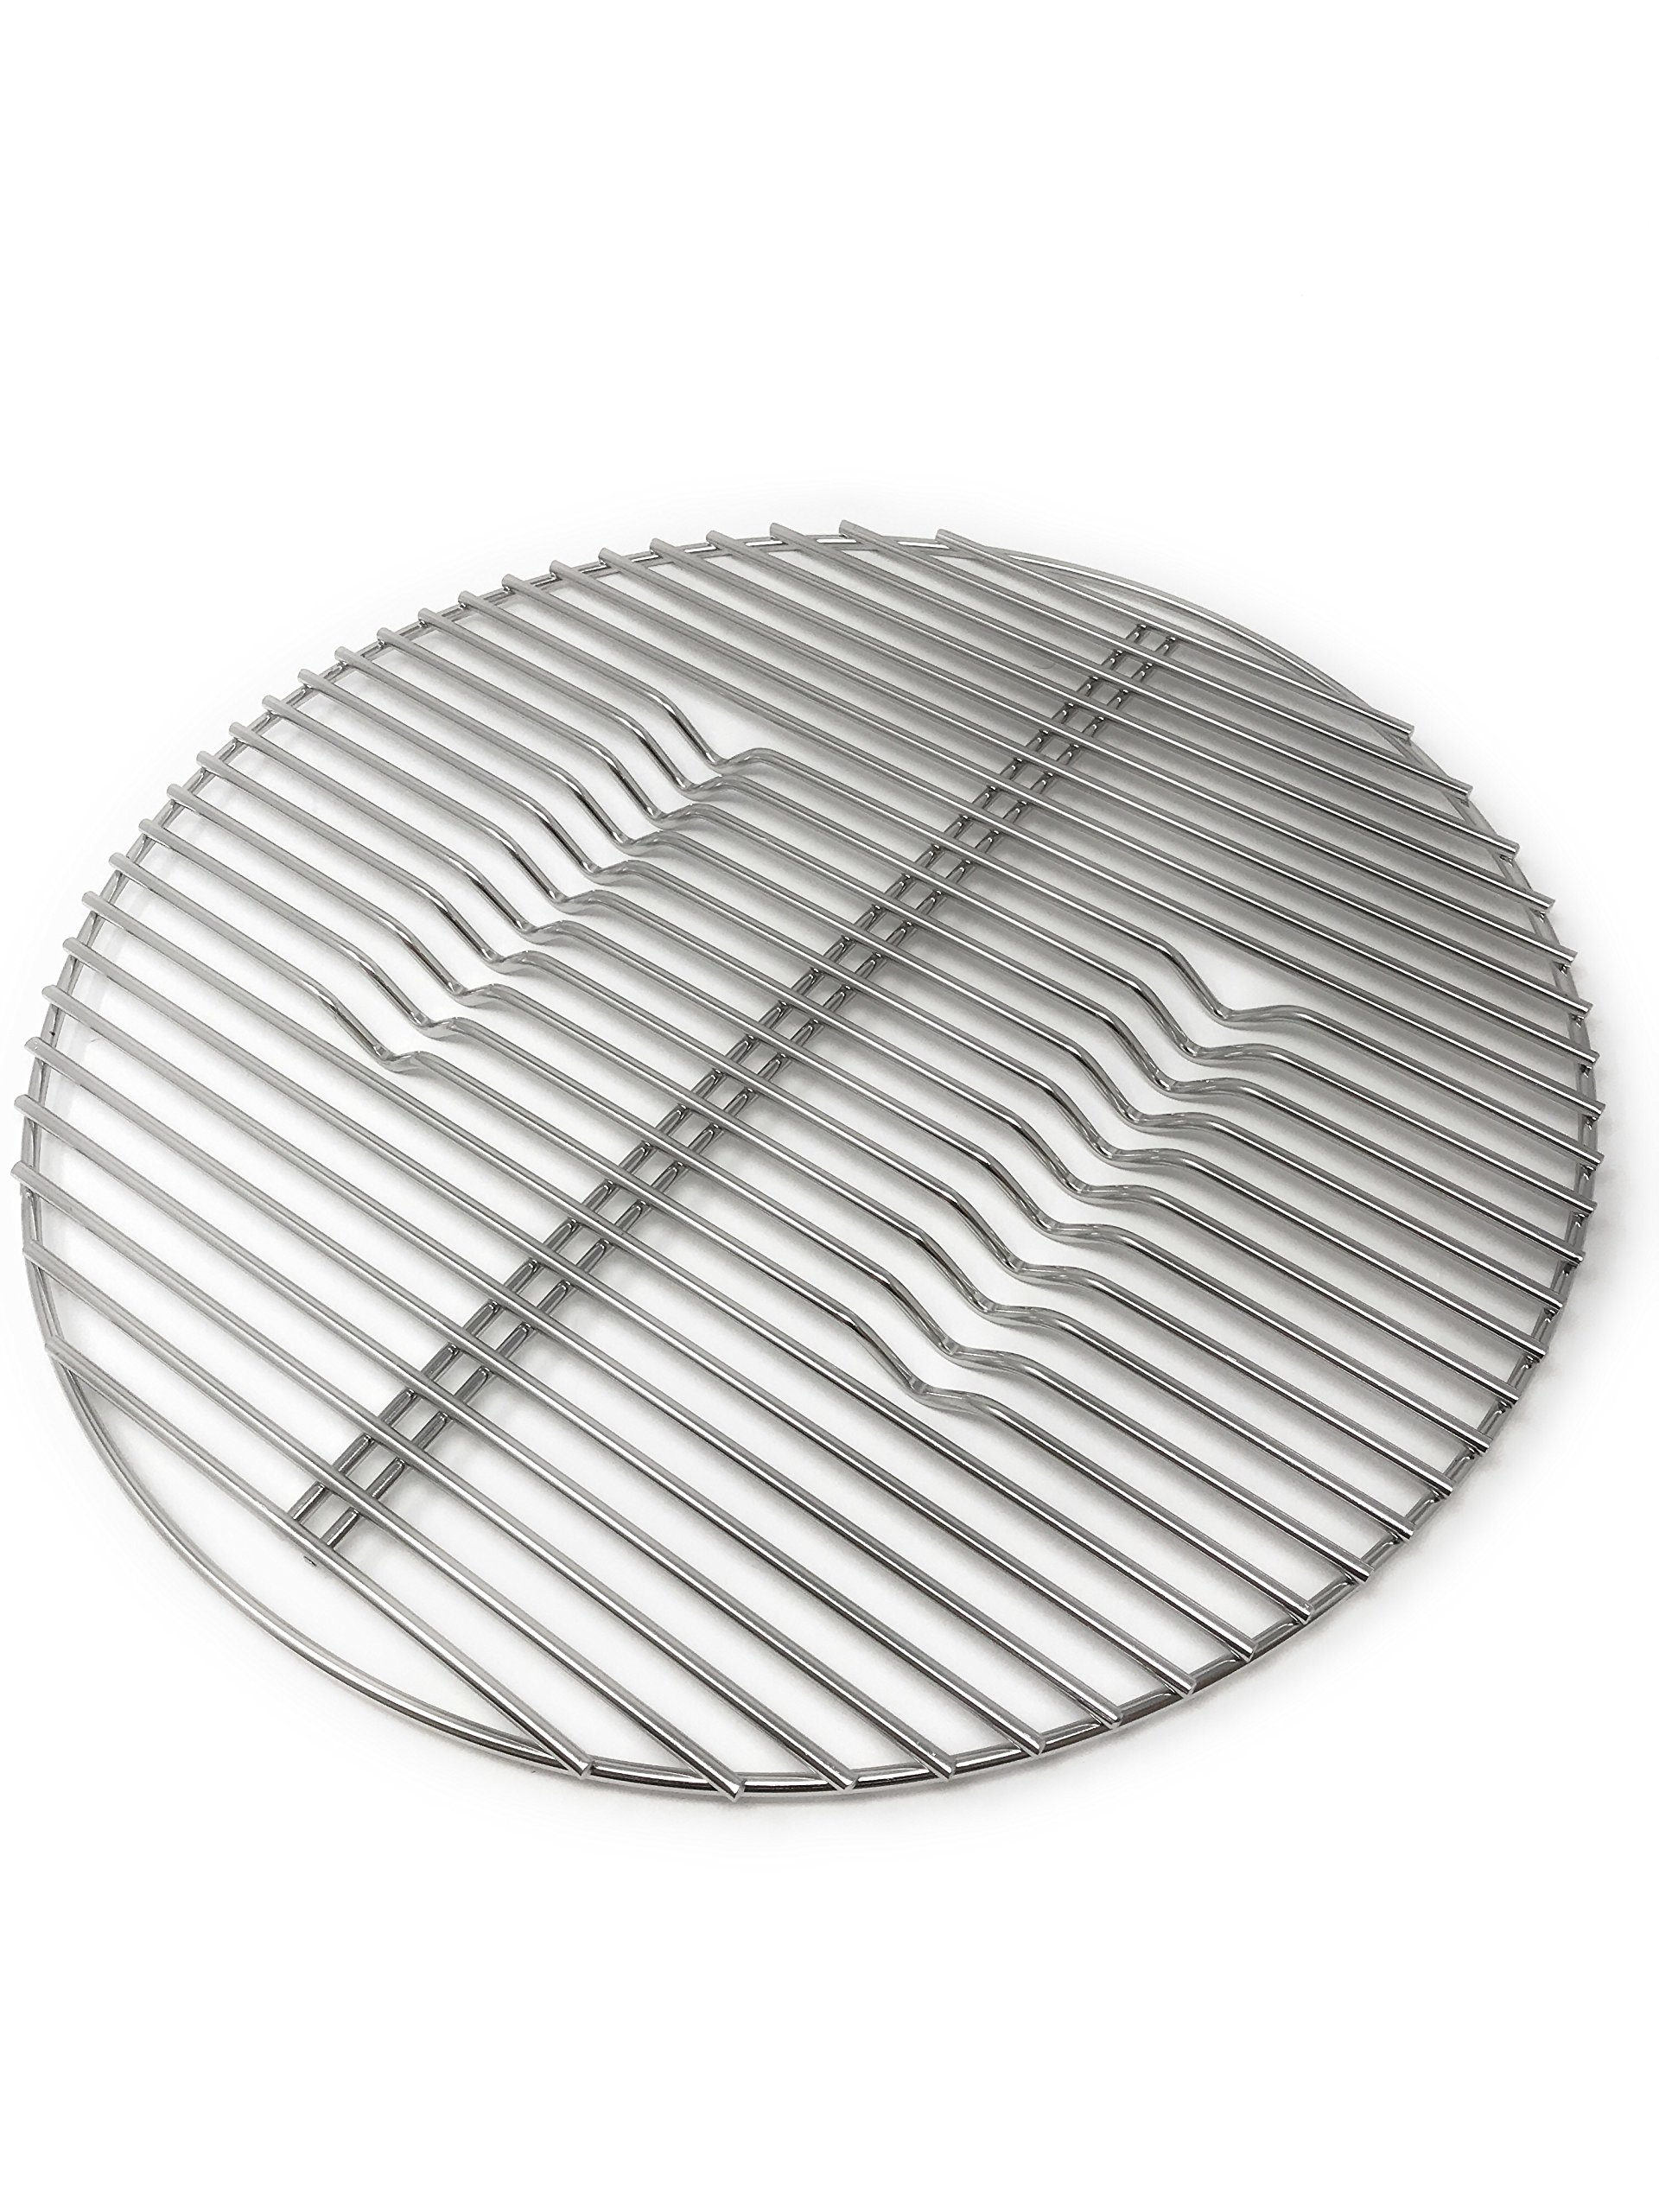 Aura Outdoor Products EZ Light Bottom Charcoal Grate for 22in Weber Kettle Grill